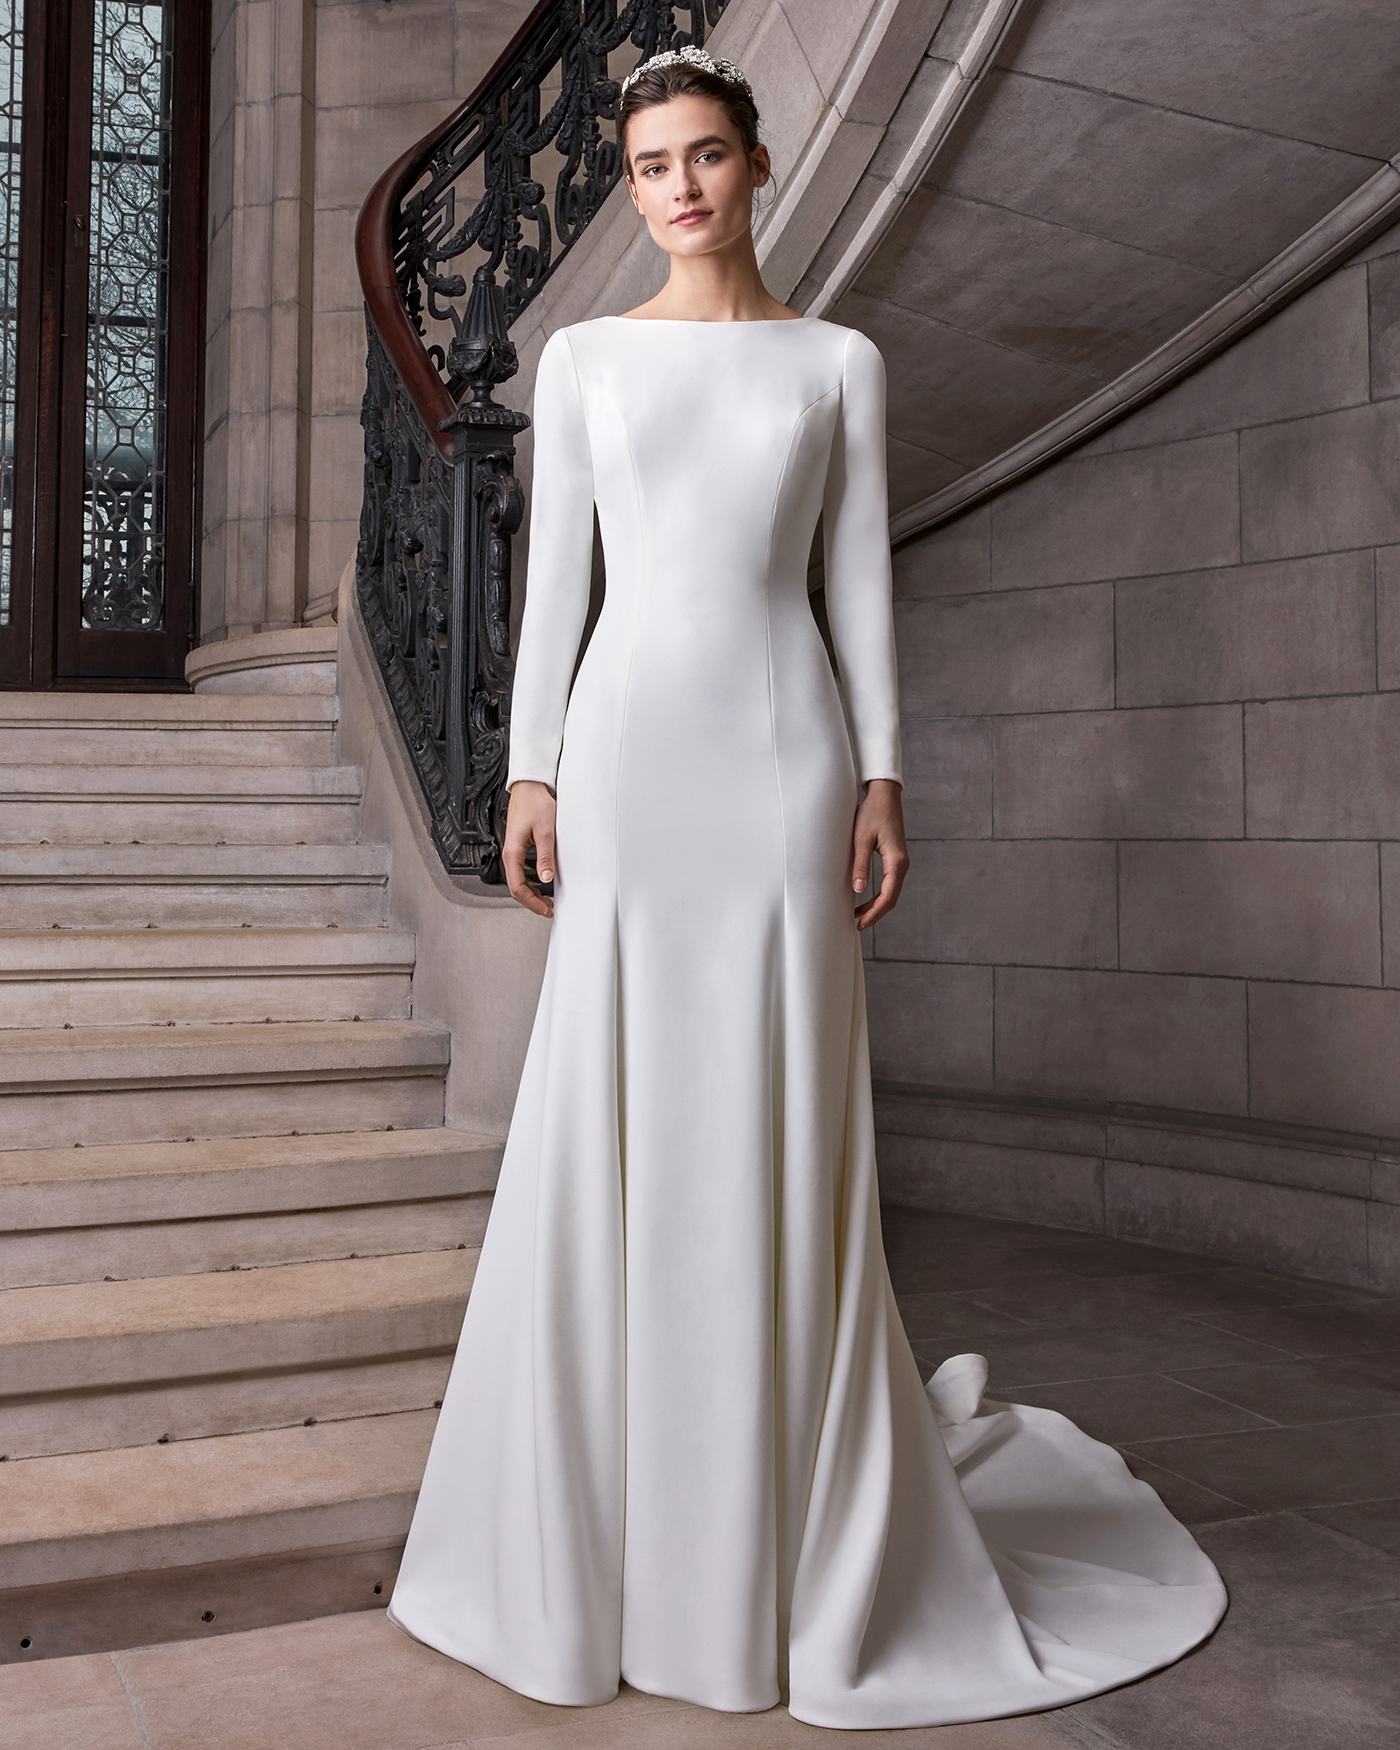 sareh nouri long sleeve high neck wedding dress spring 2020